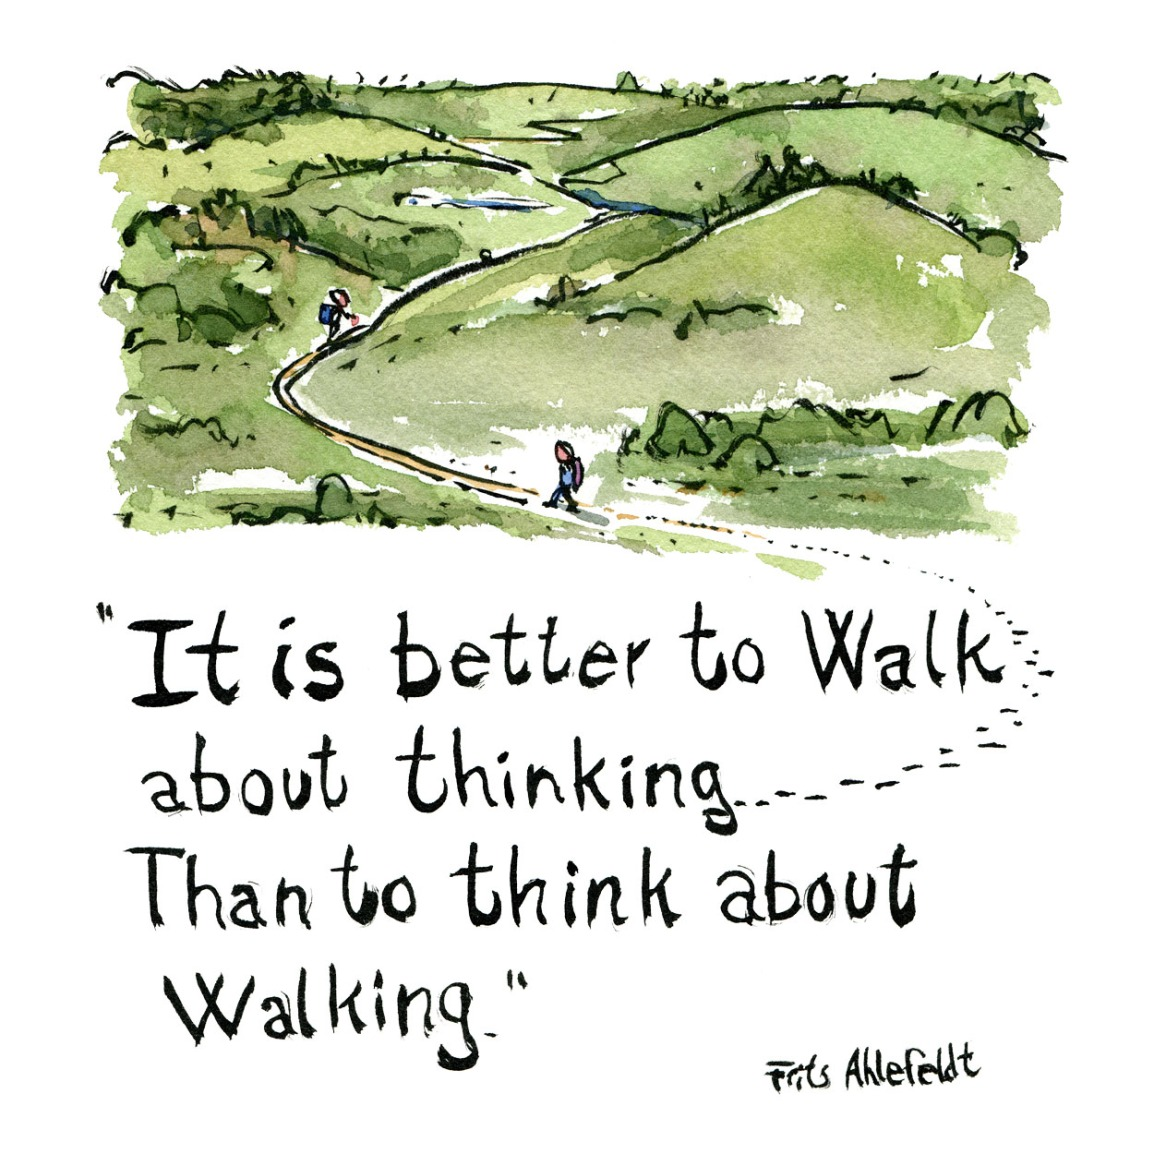 It's better to walk about thinking than think about walking